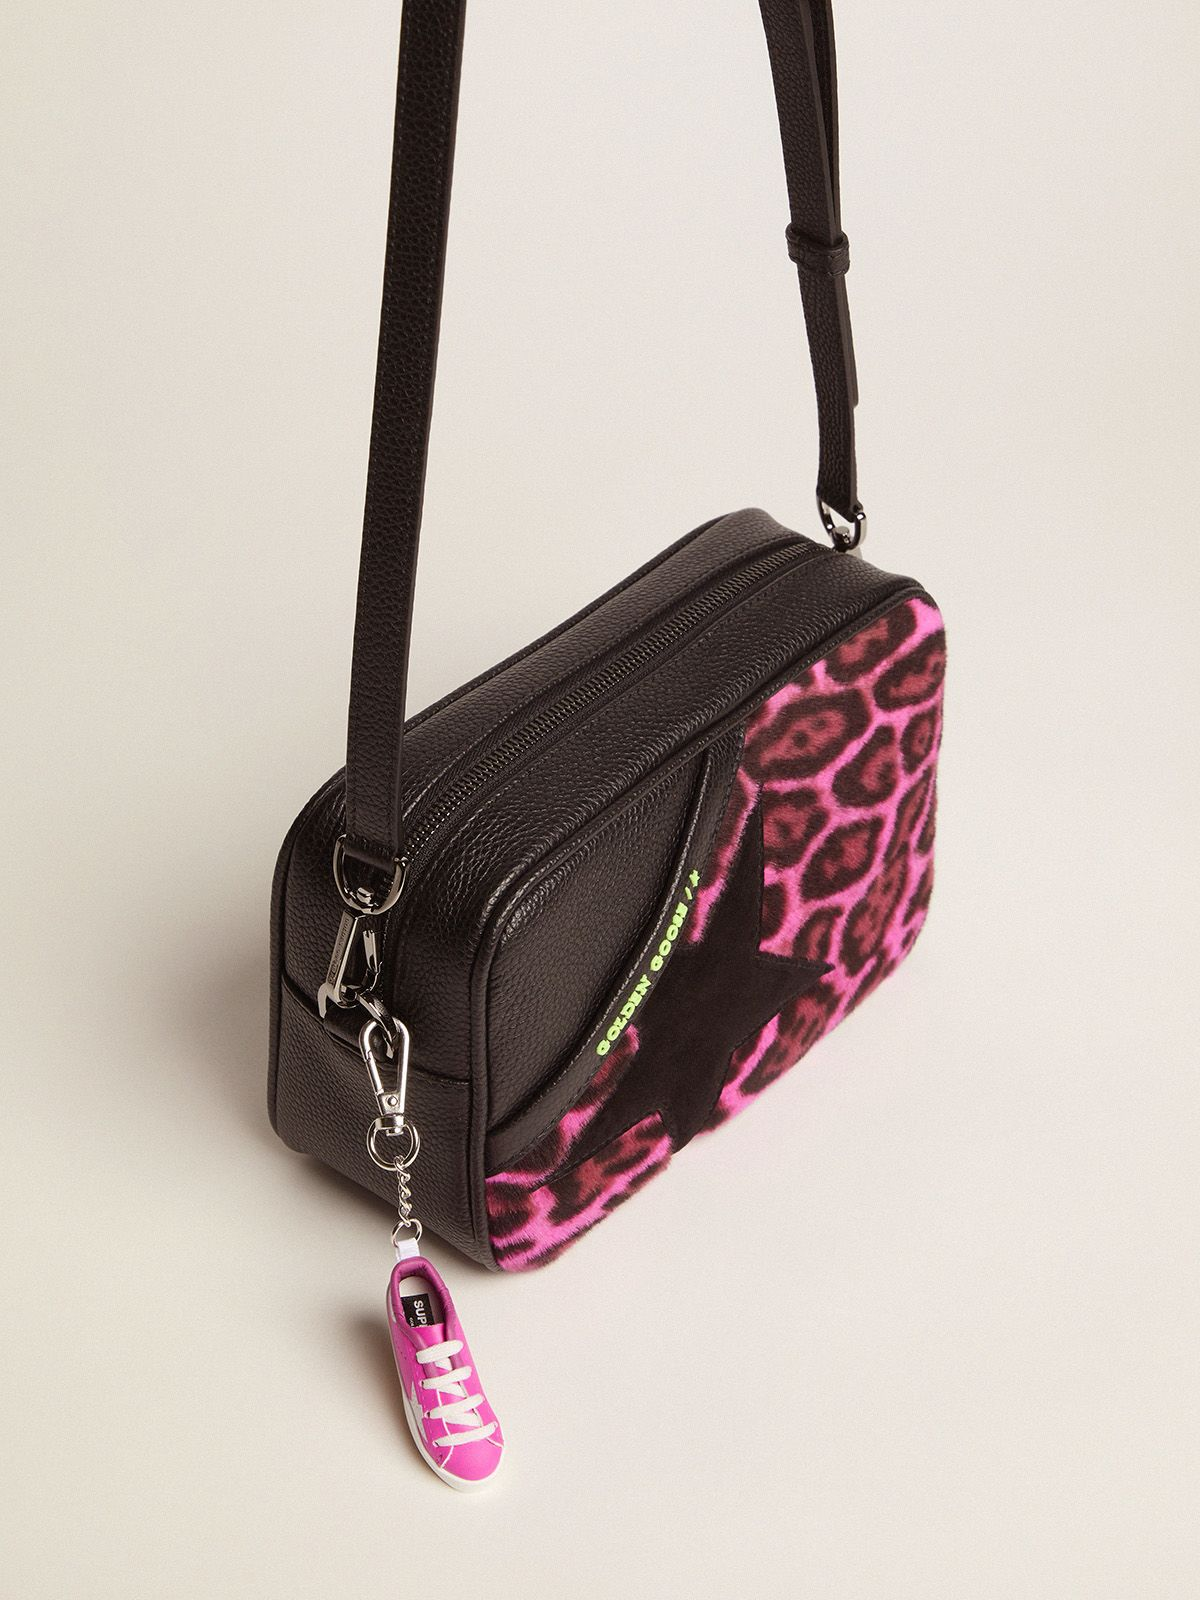 Golden Goose - Borsa Star Bag in cavallino fucsia leopardato in